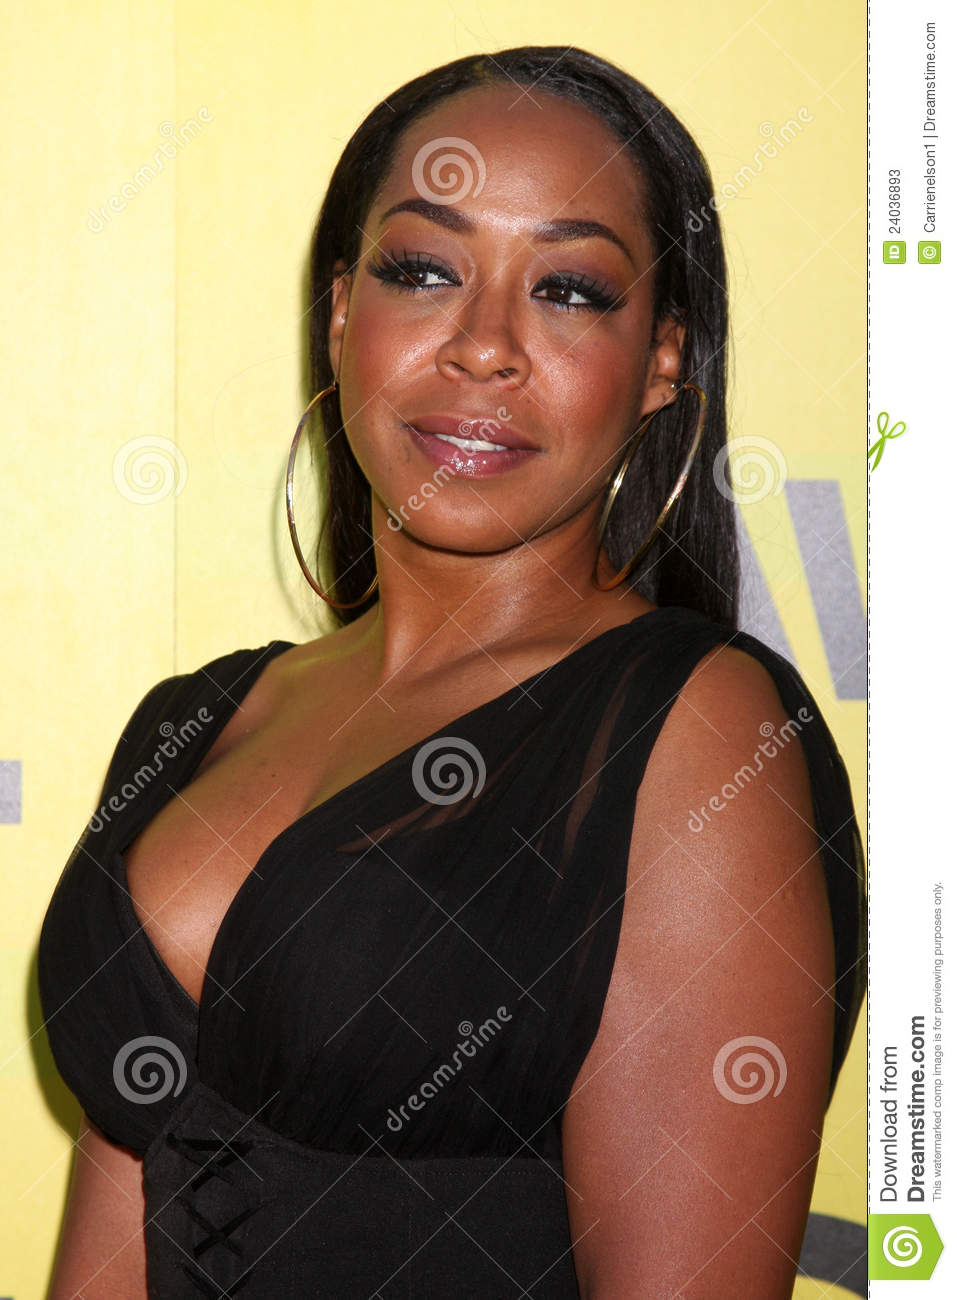 Tichina Arnold nude (67 foto and video), Topless, Paparazzi, Boobs, panties 2015